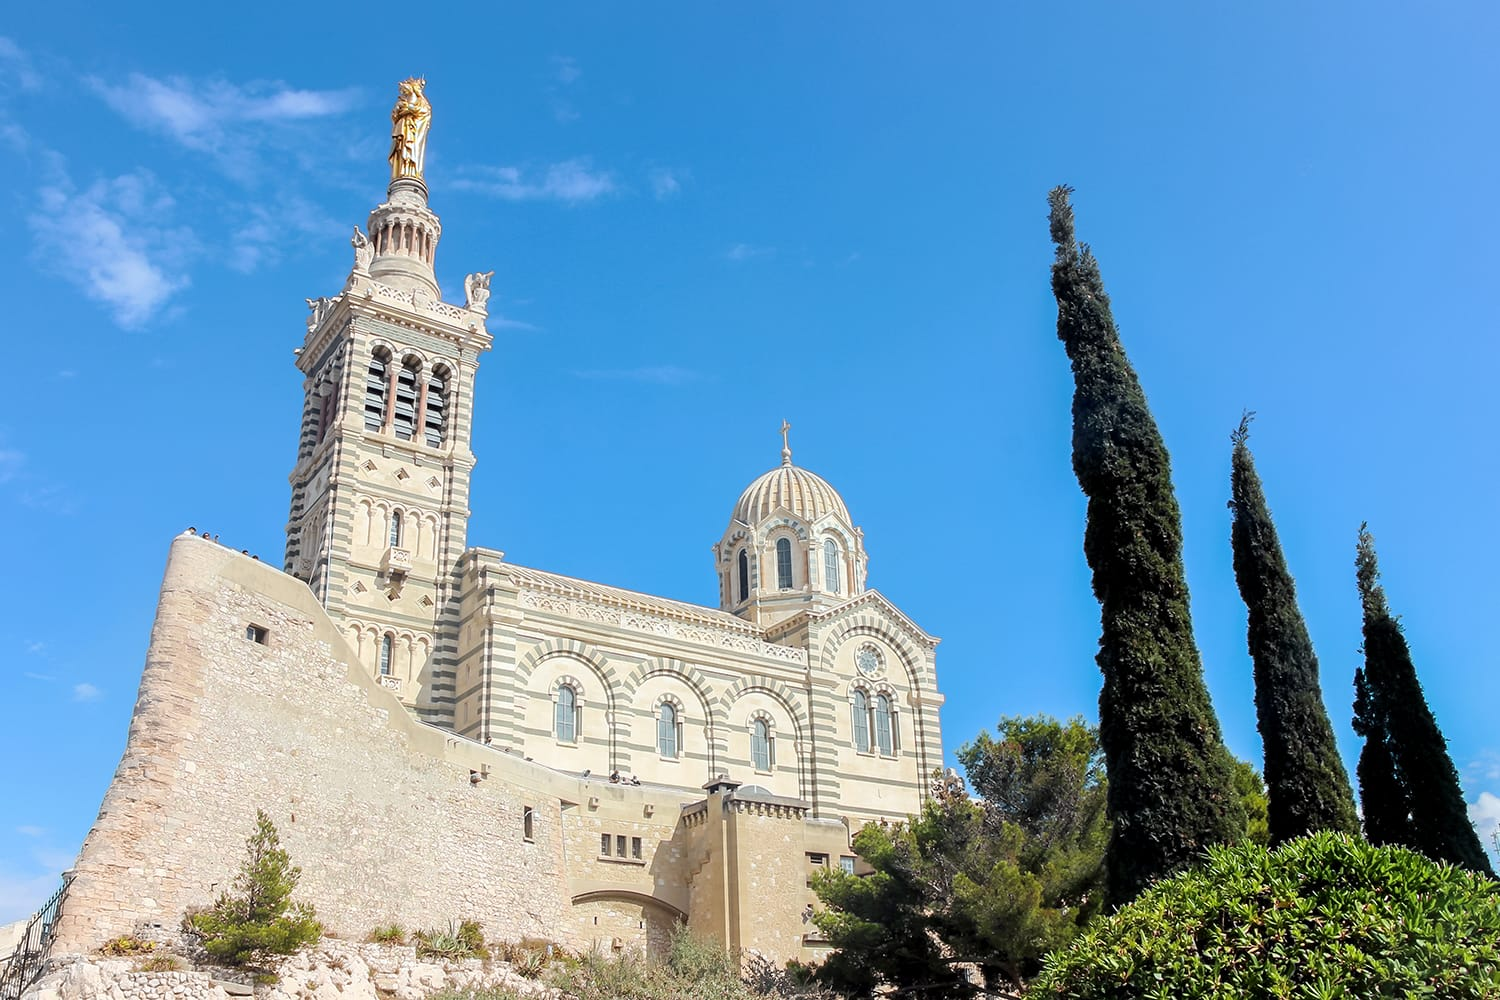 Exterior of Basilique Notre-Dame de la Garde in Marseille, France